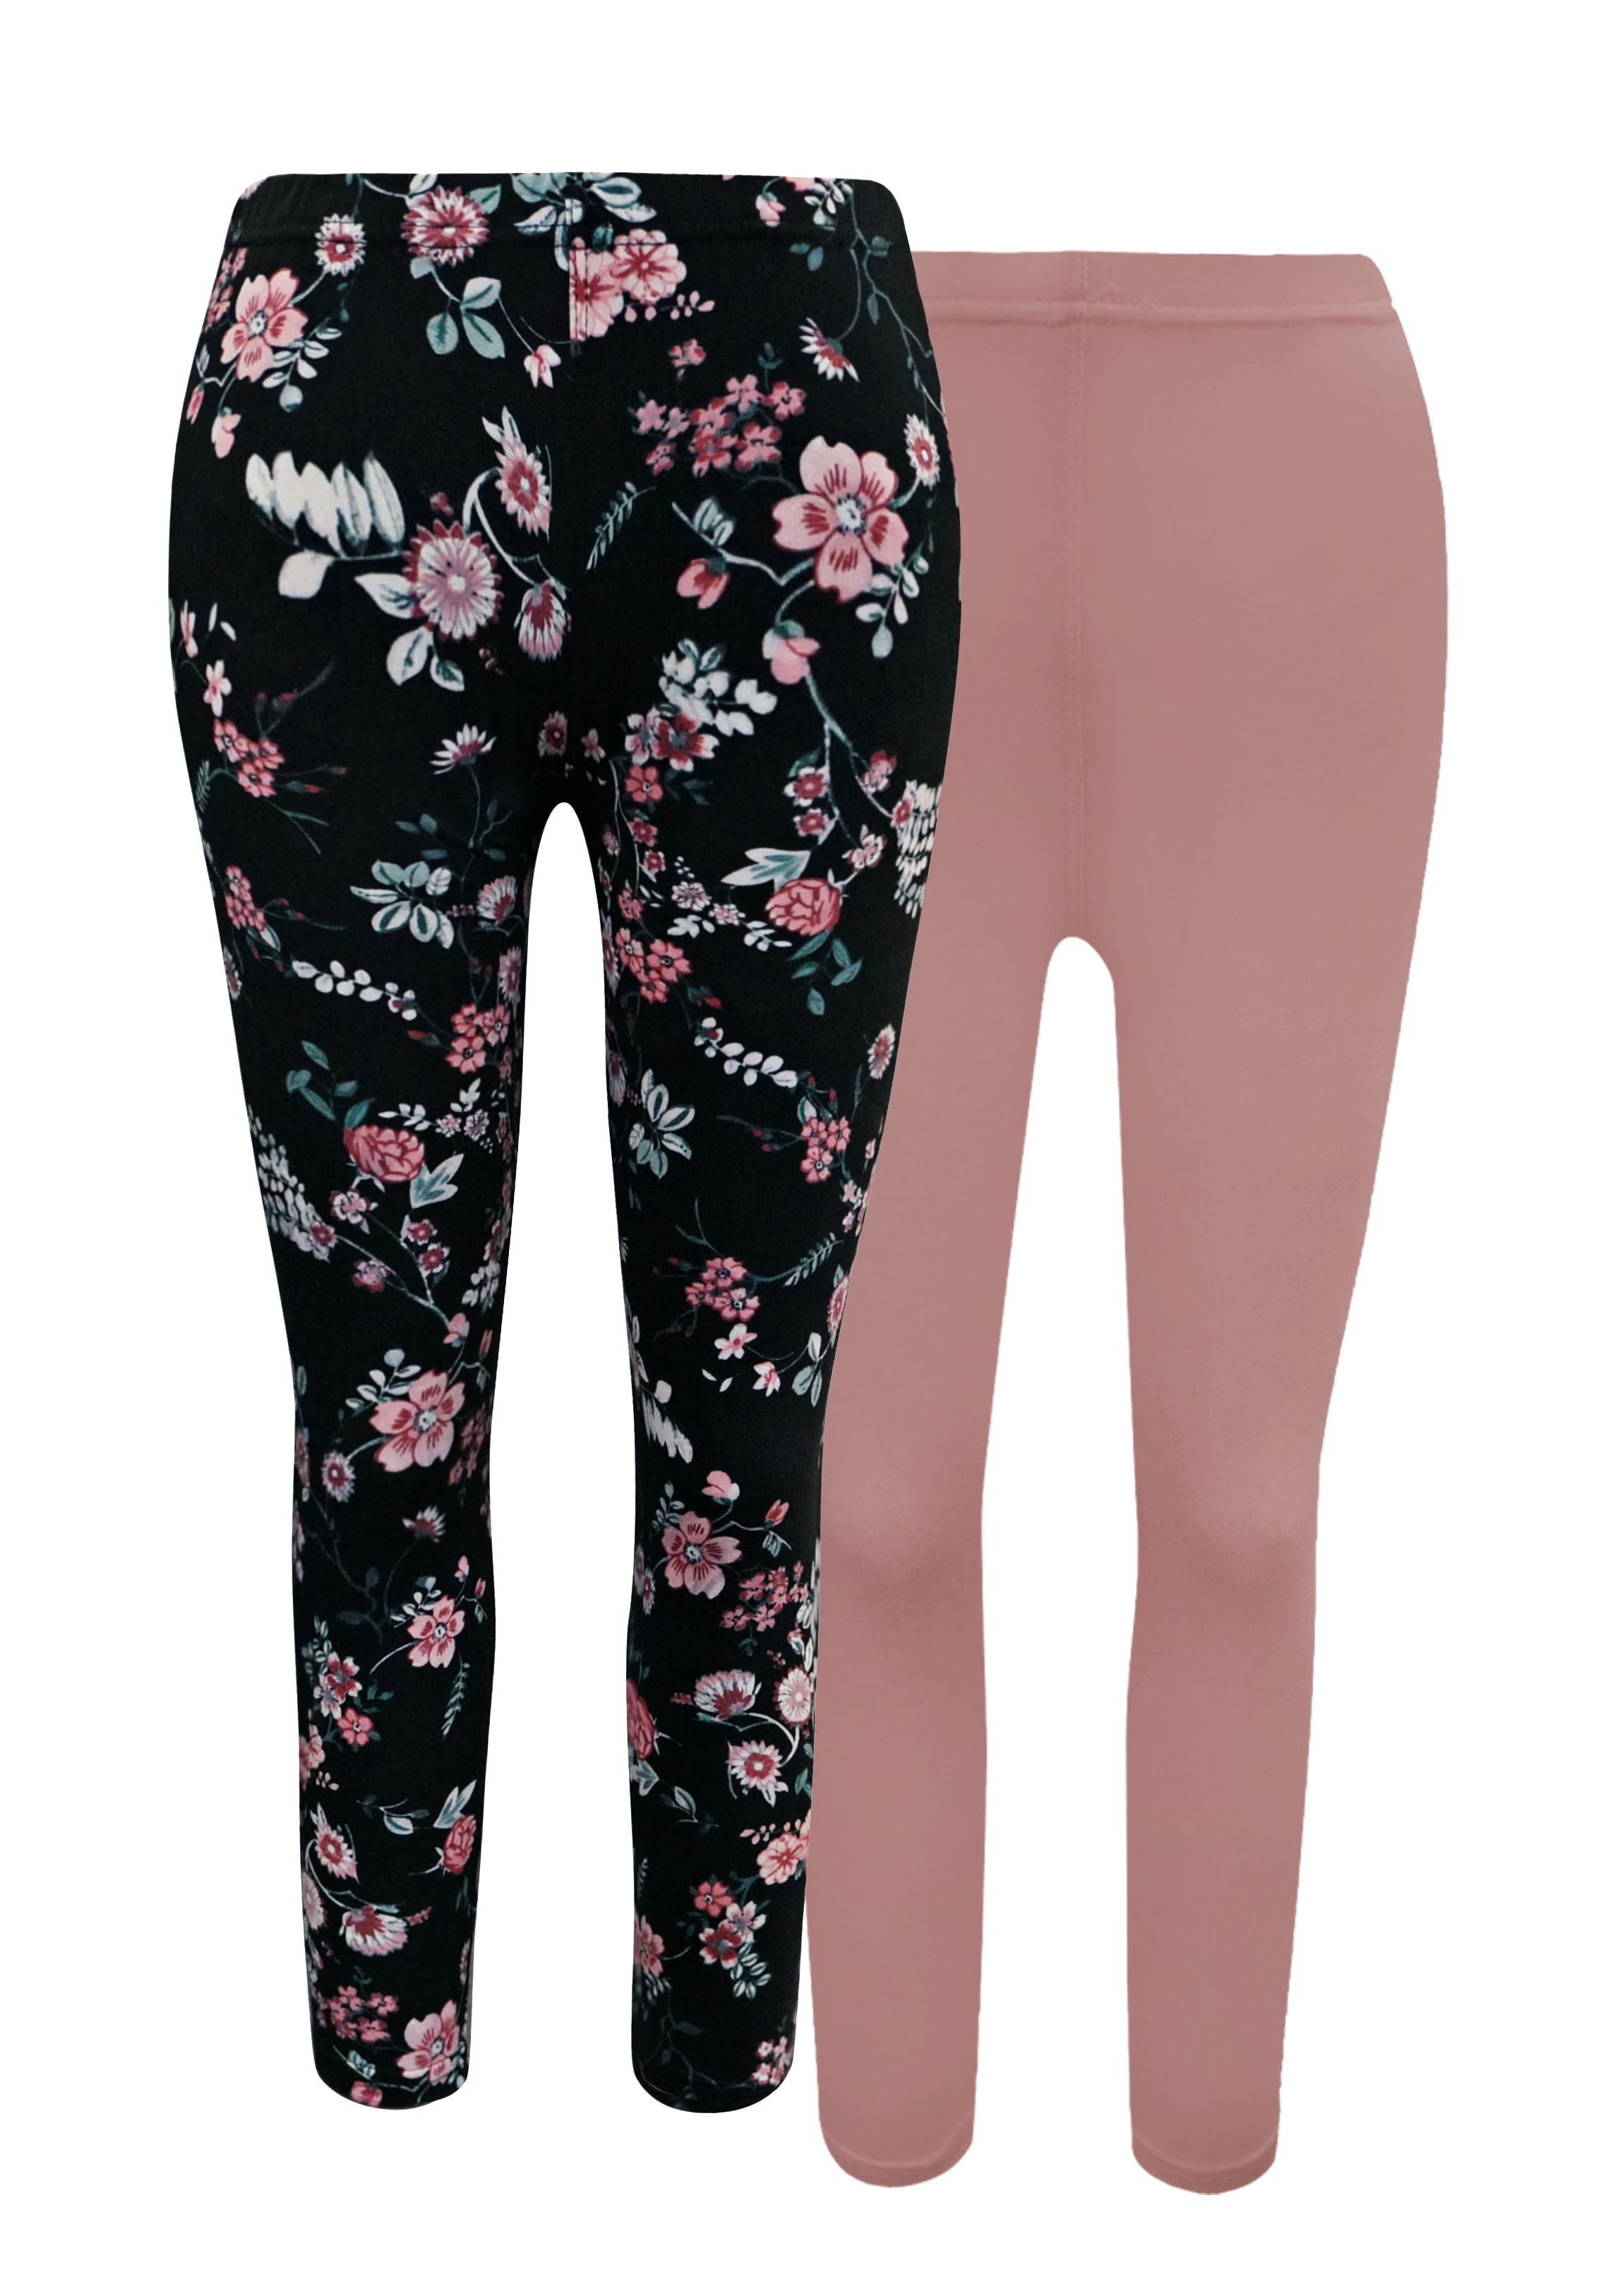 KIDS 2PACK SOLID MAUVE & BLACK/PINK FLORAL PRINT BASIC LEGGING(7/8,10/12) #X2K8L54-22